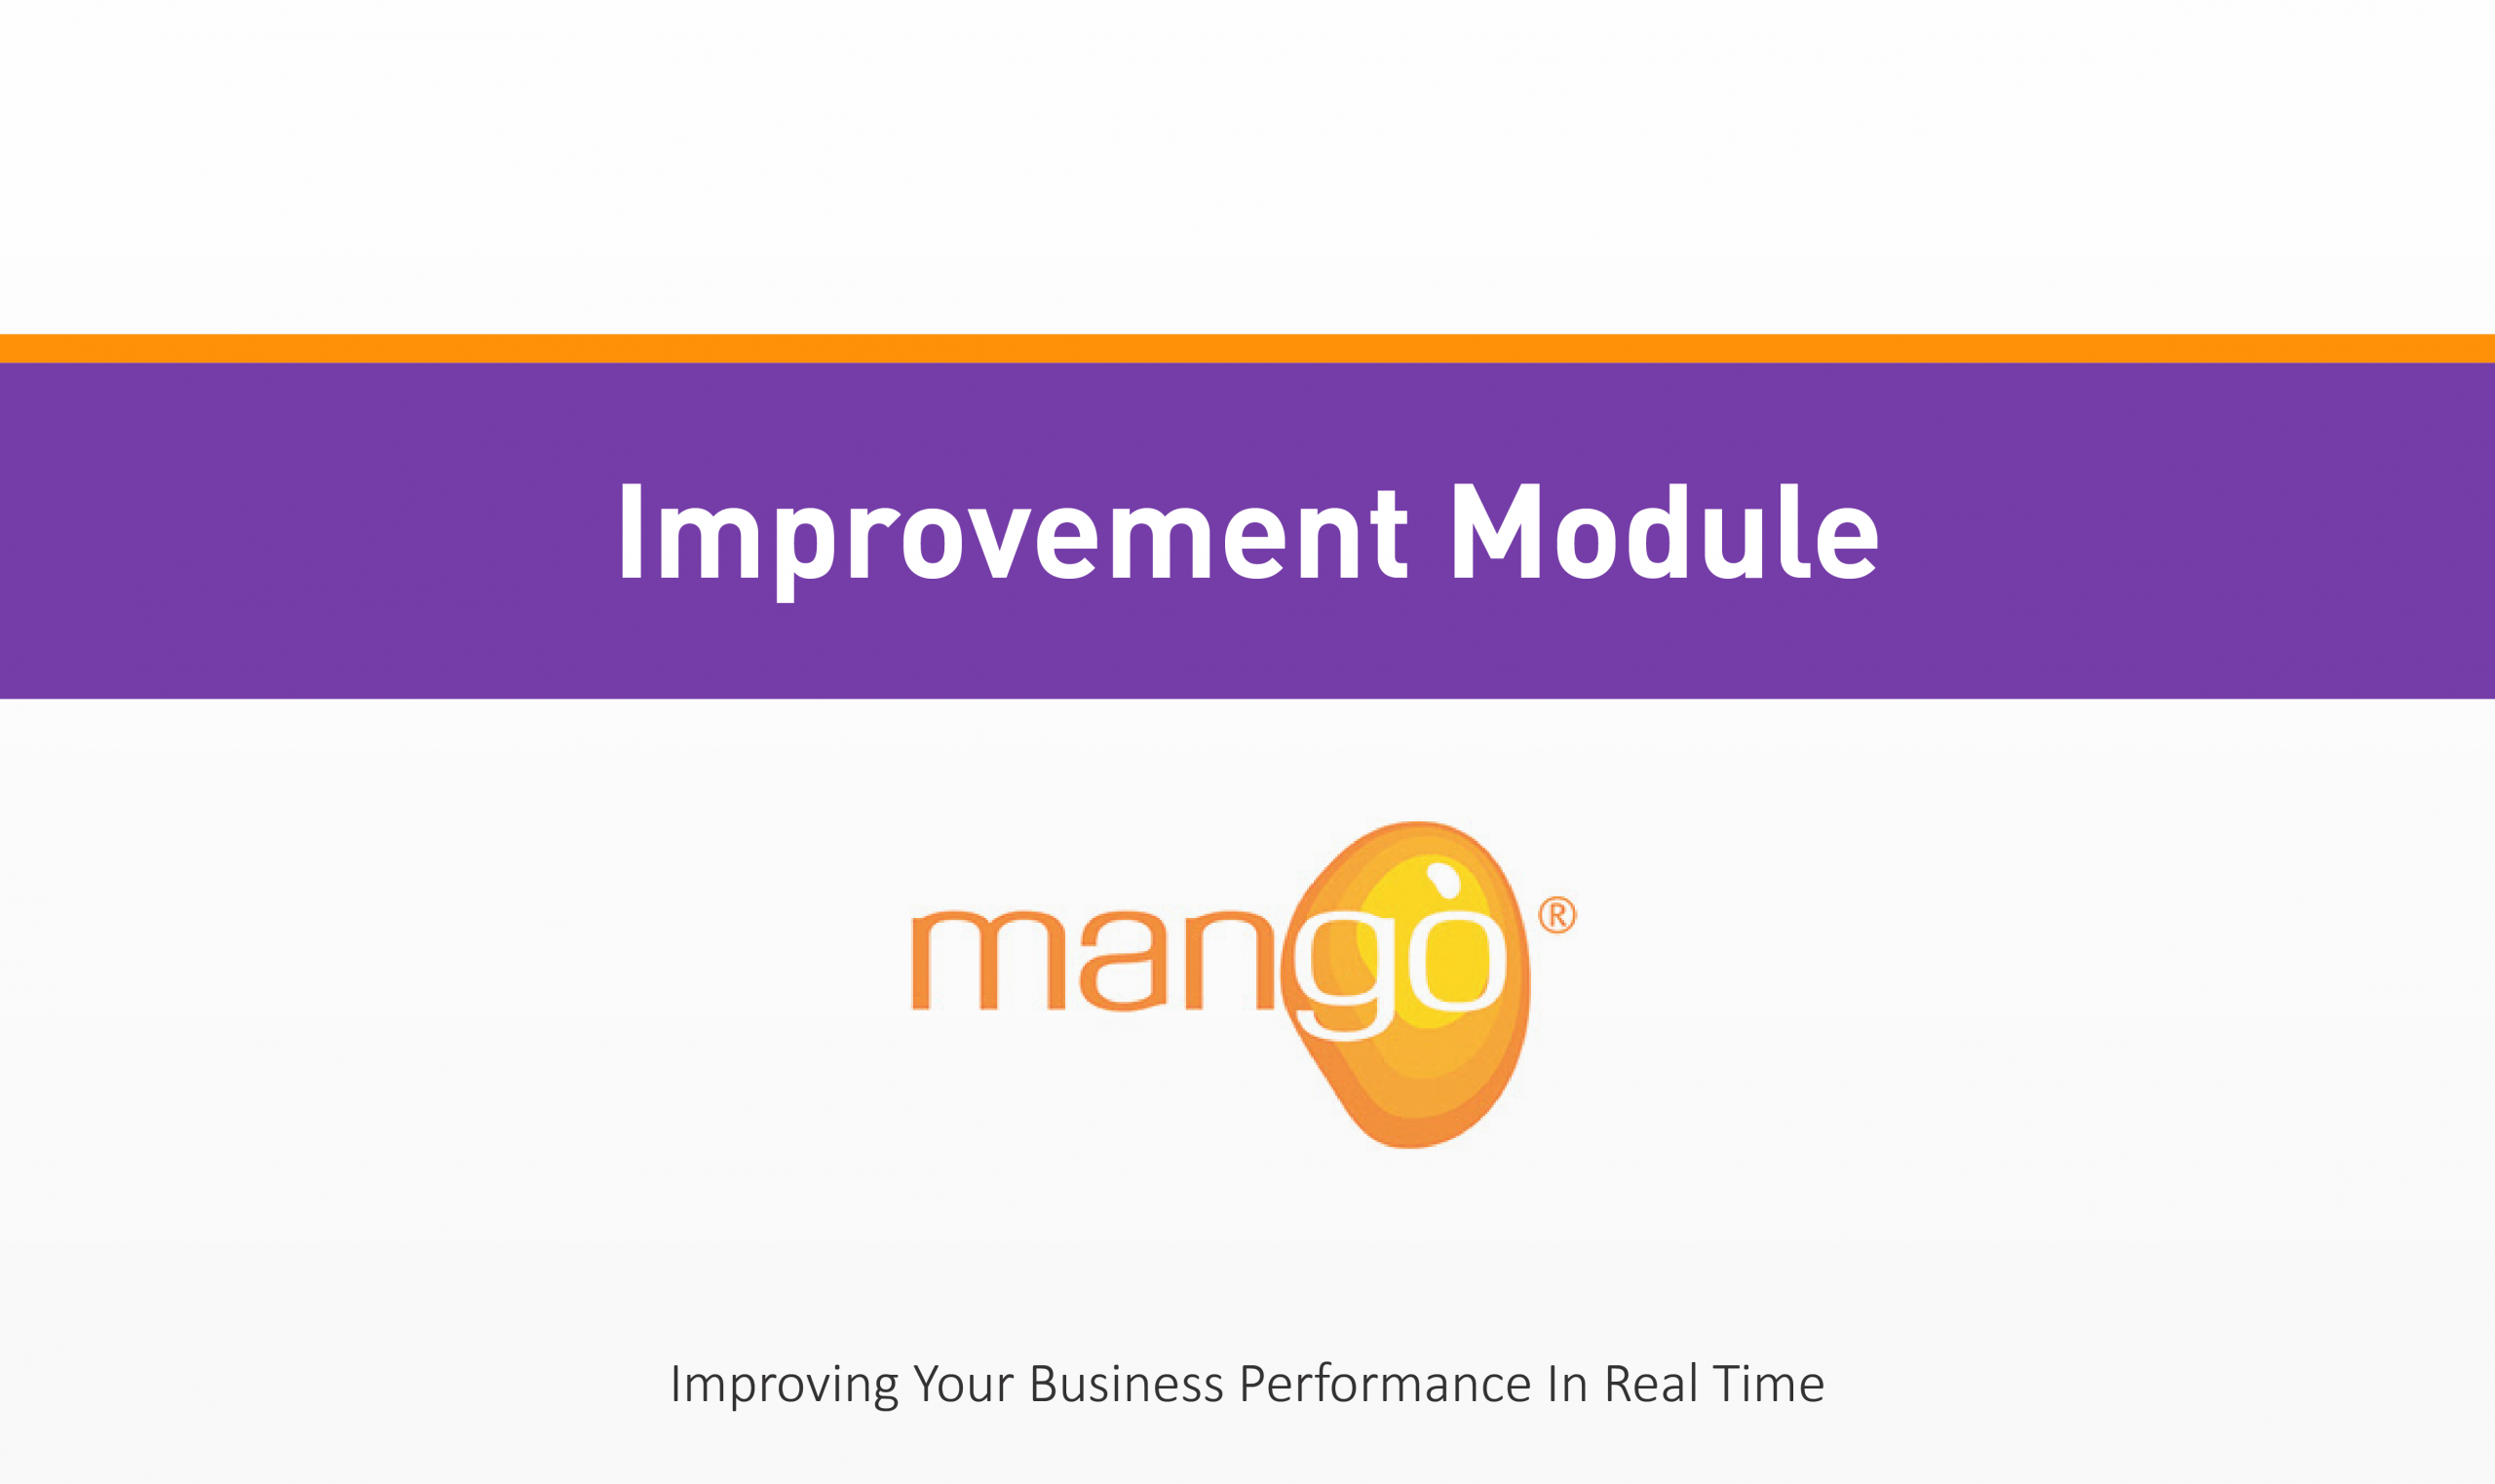 Business Improvement Quality Health Safety Environment Management Compliance Services Australia QHSE Consulting And Auditing Mango Compliance Software Solutions